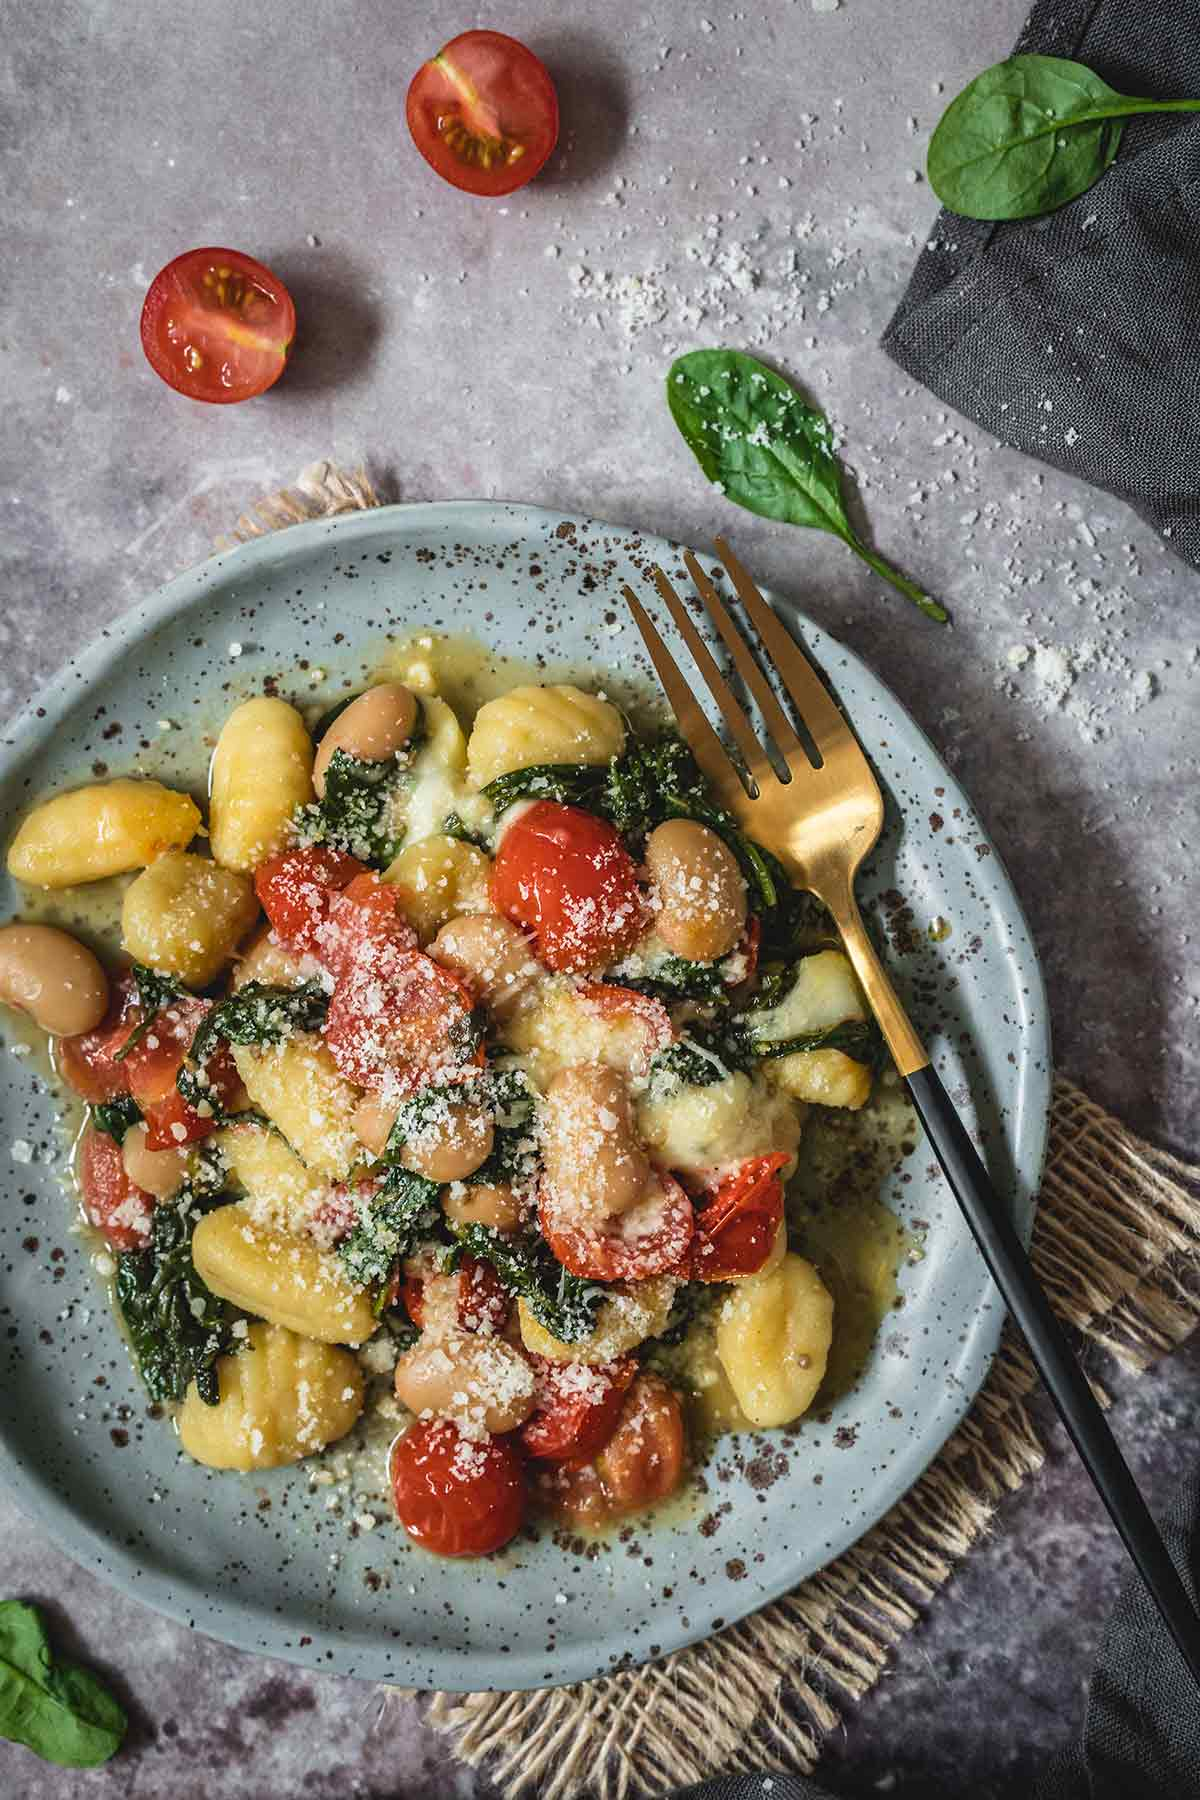 Gnocchi with spinach and tomatoes overhead shot